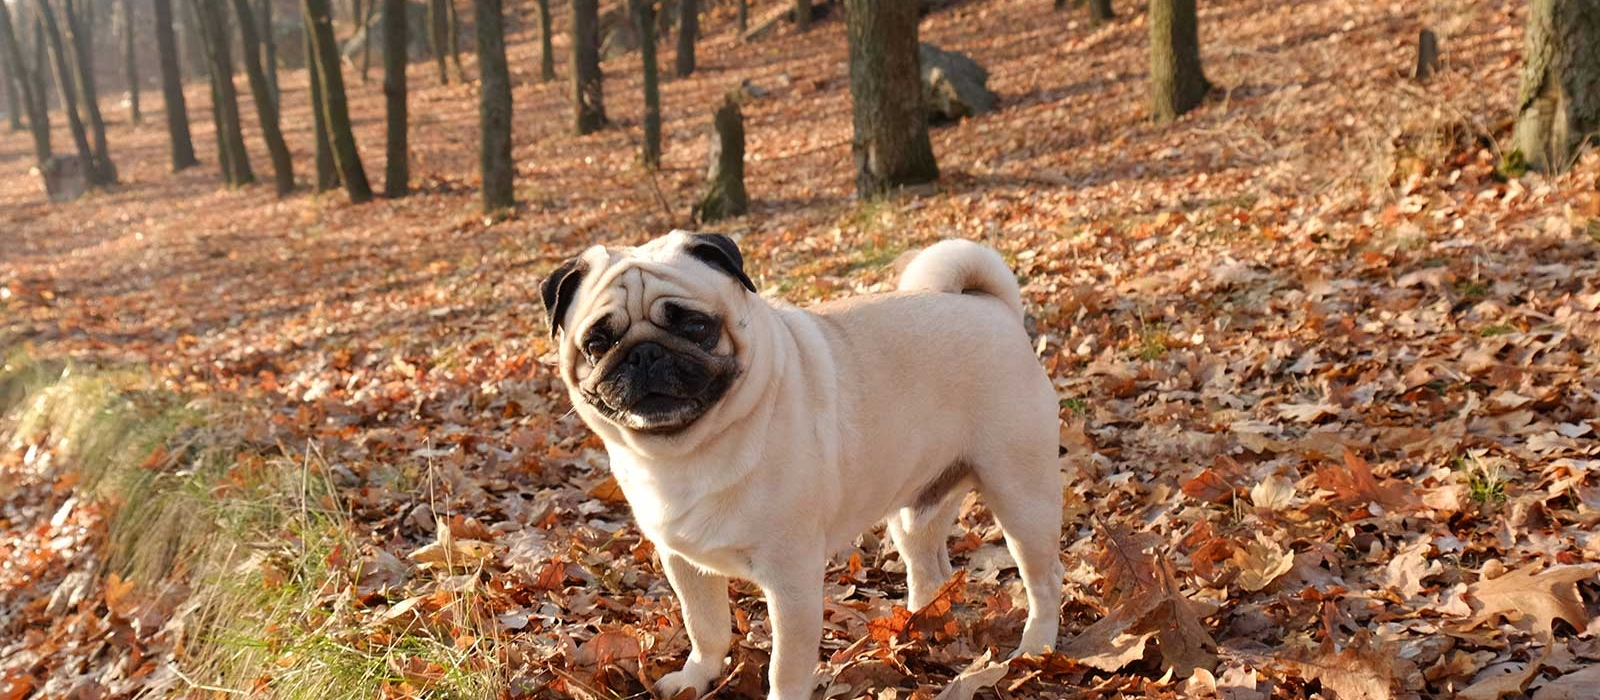 Pug Puppies For Sale - Pug Dog Breed Profile | Greenfield